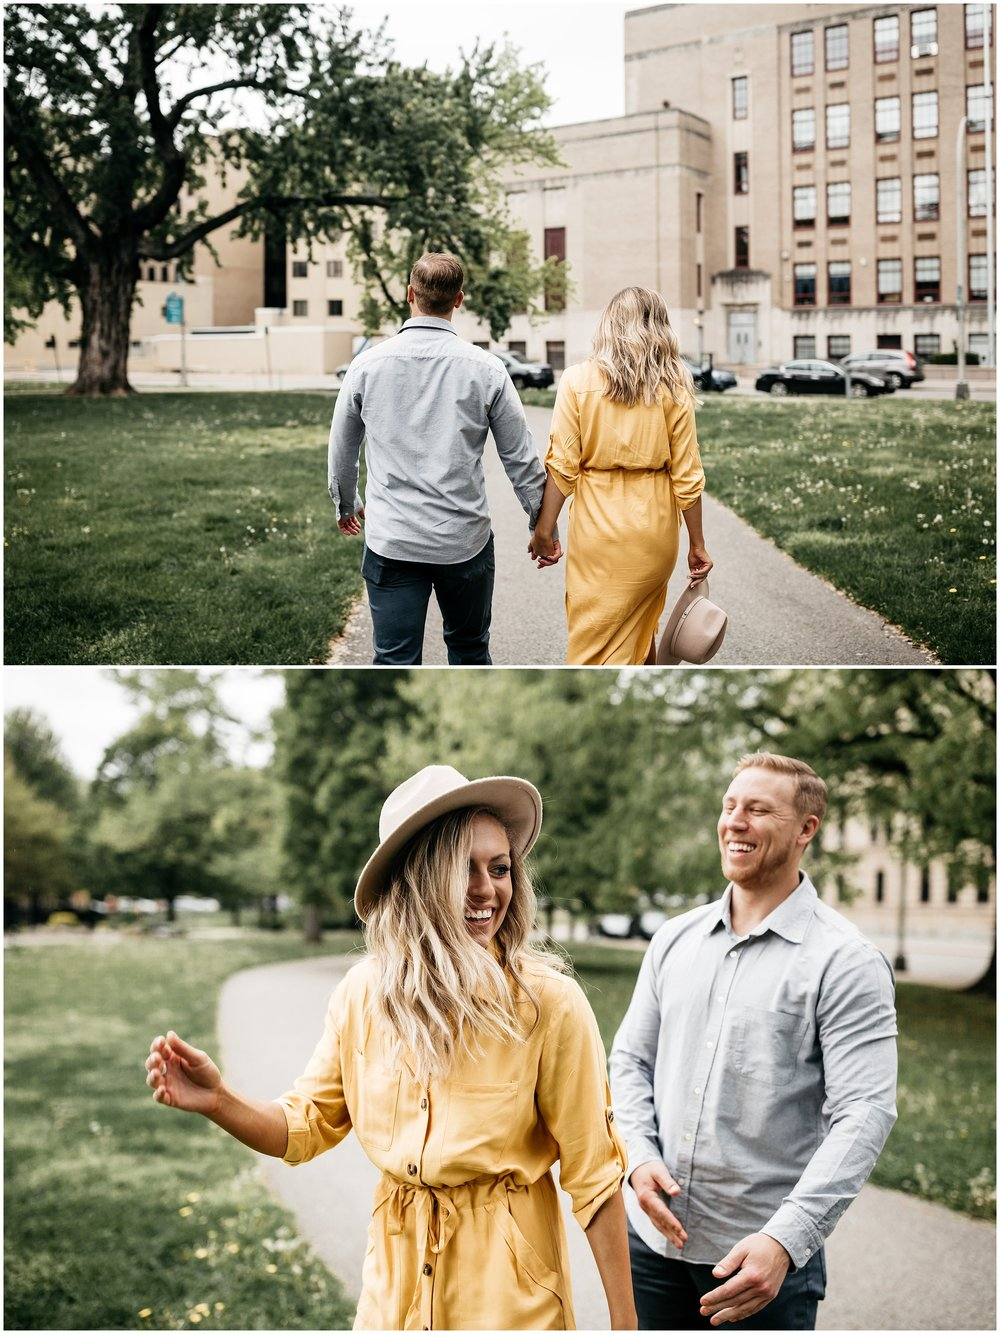 pittsburghengagementphotos_0011.jpg